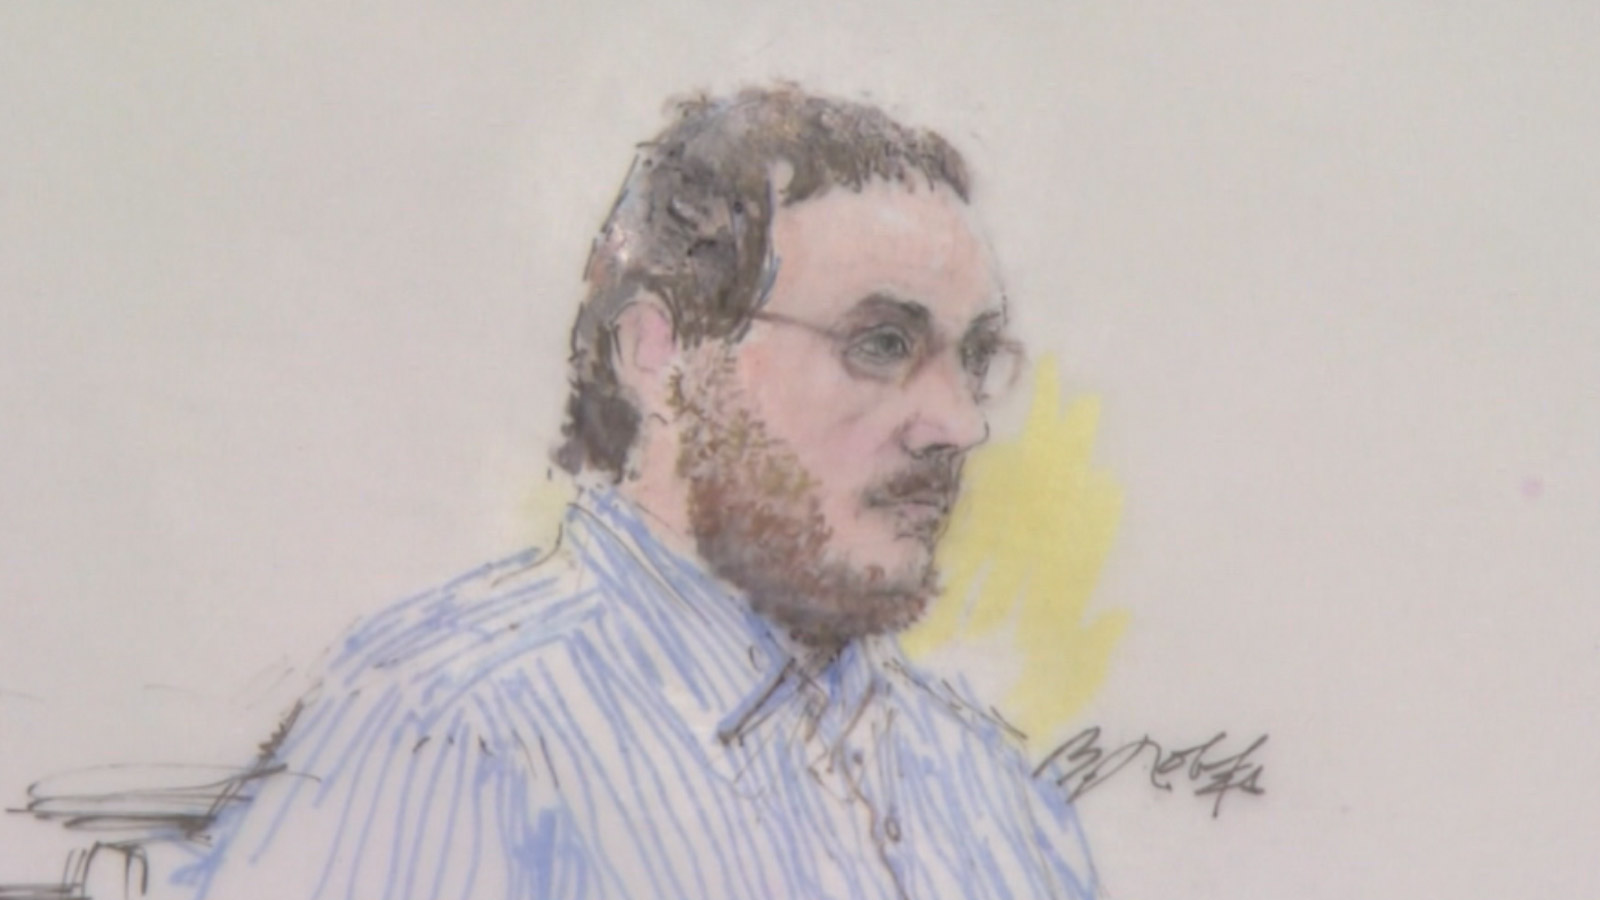 James Holmes in court on Feb. 11, 2015 (Sketch by Bill Robles)